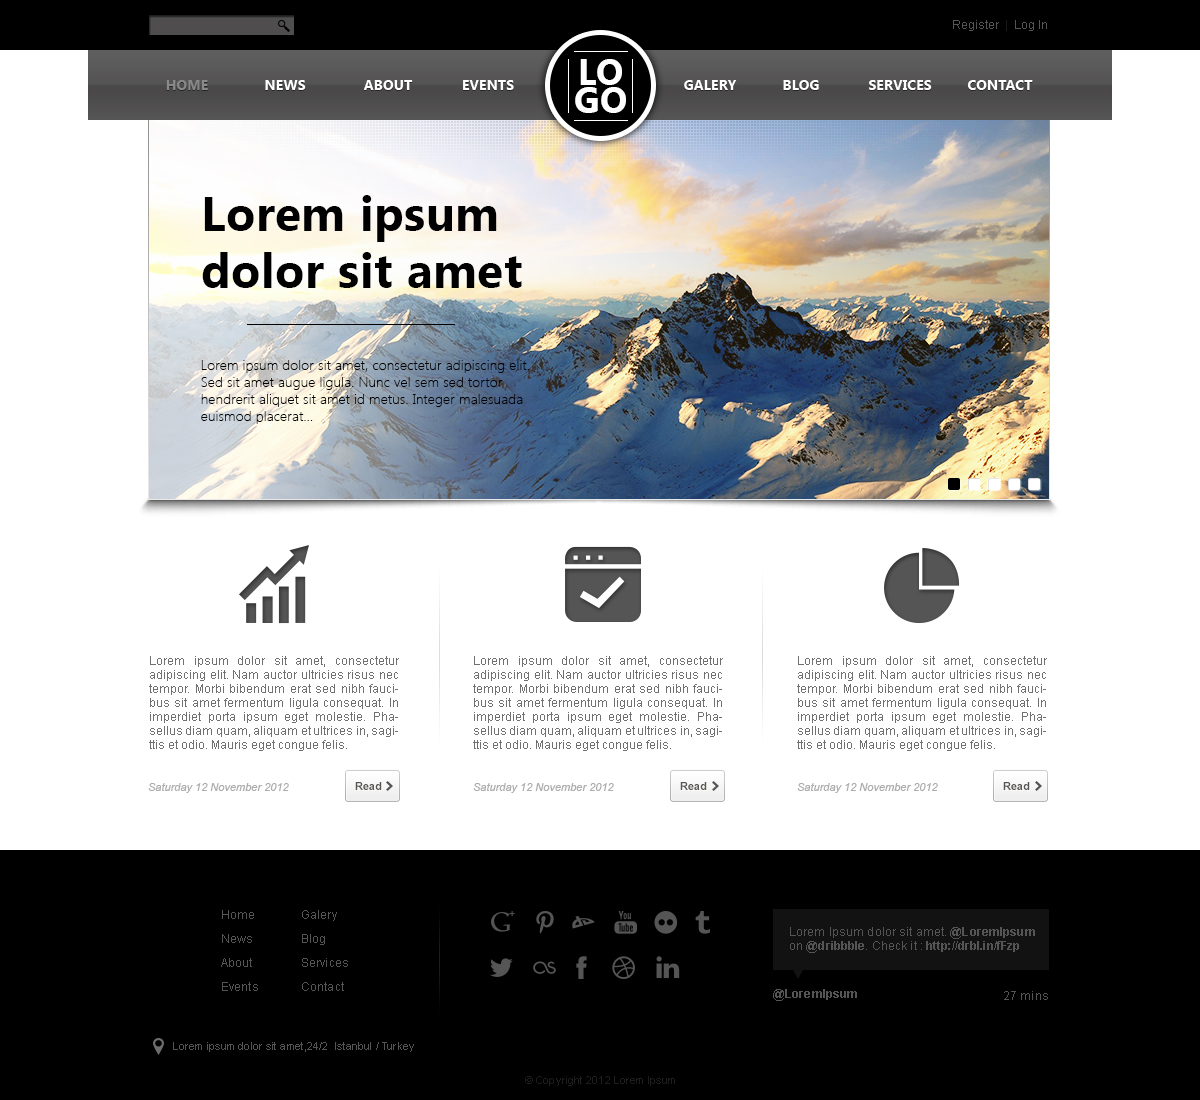 Free Psd Website Creative Template: Well-Designed PSD Website Templates For Free Download